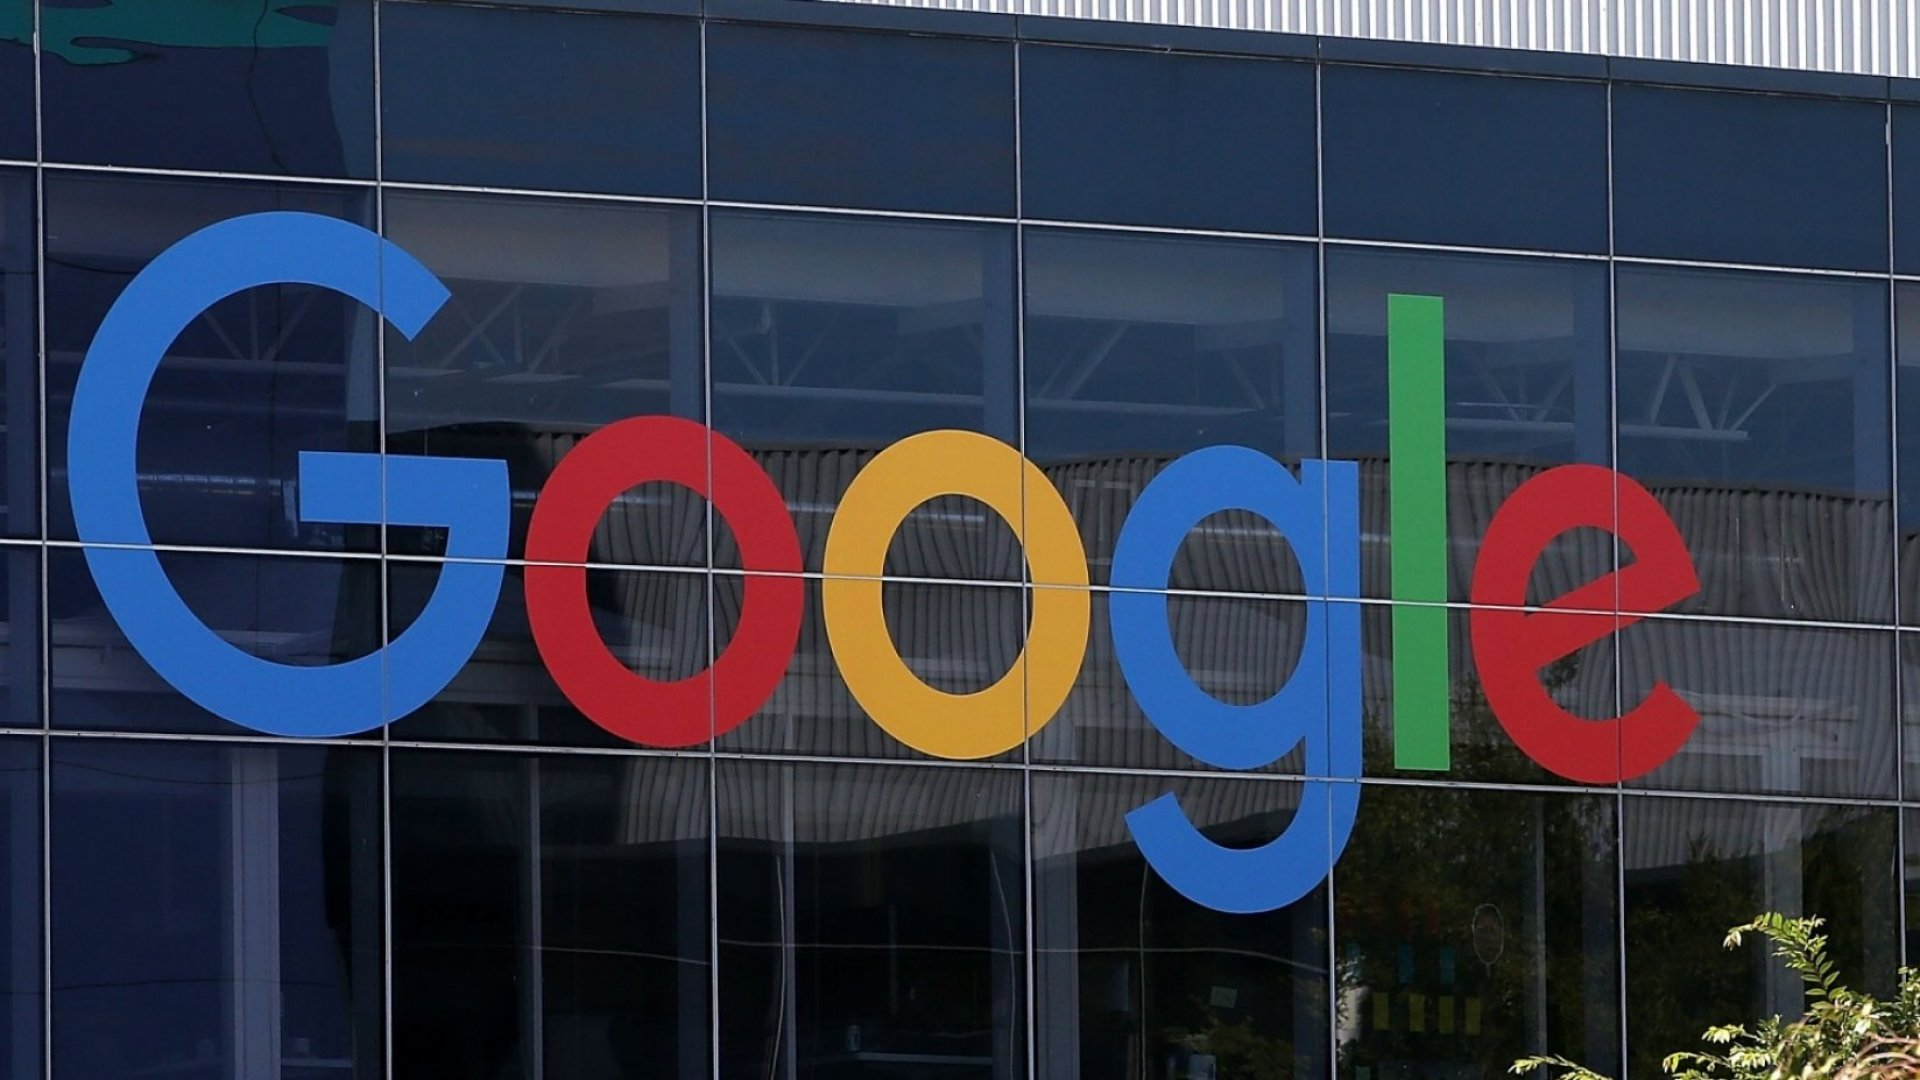 Google Automatically Rejects Most Resumes for Common MistakesYou've Probably Made Too